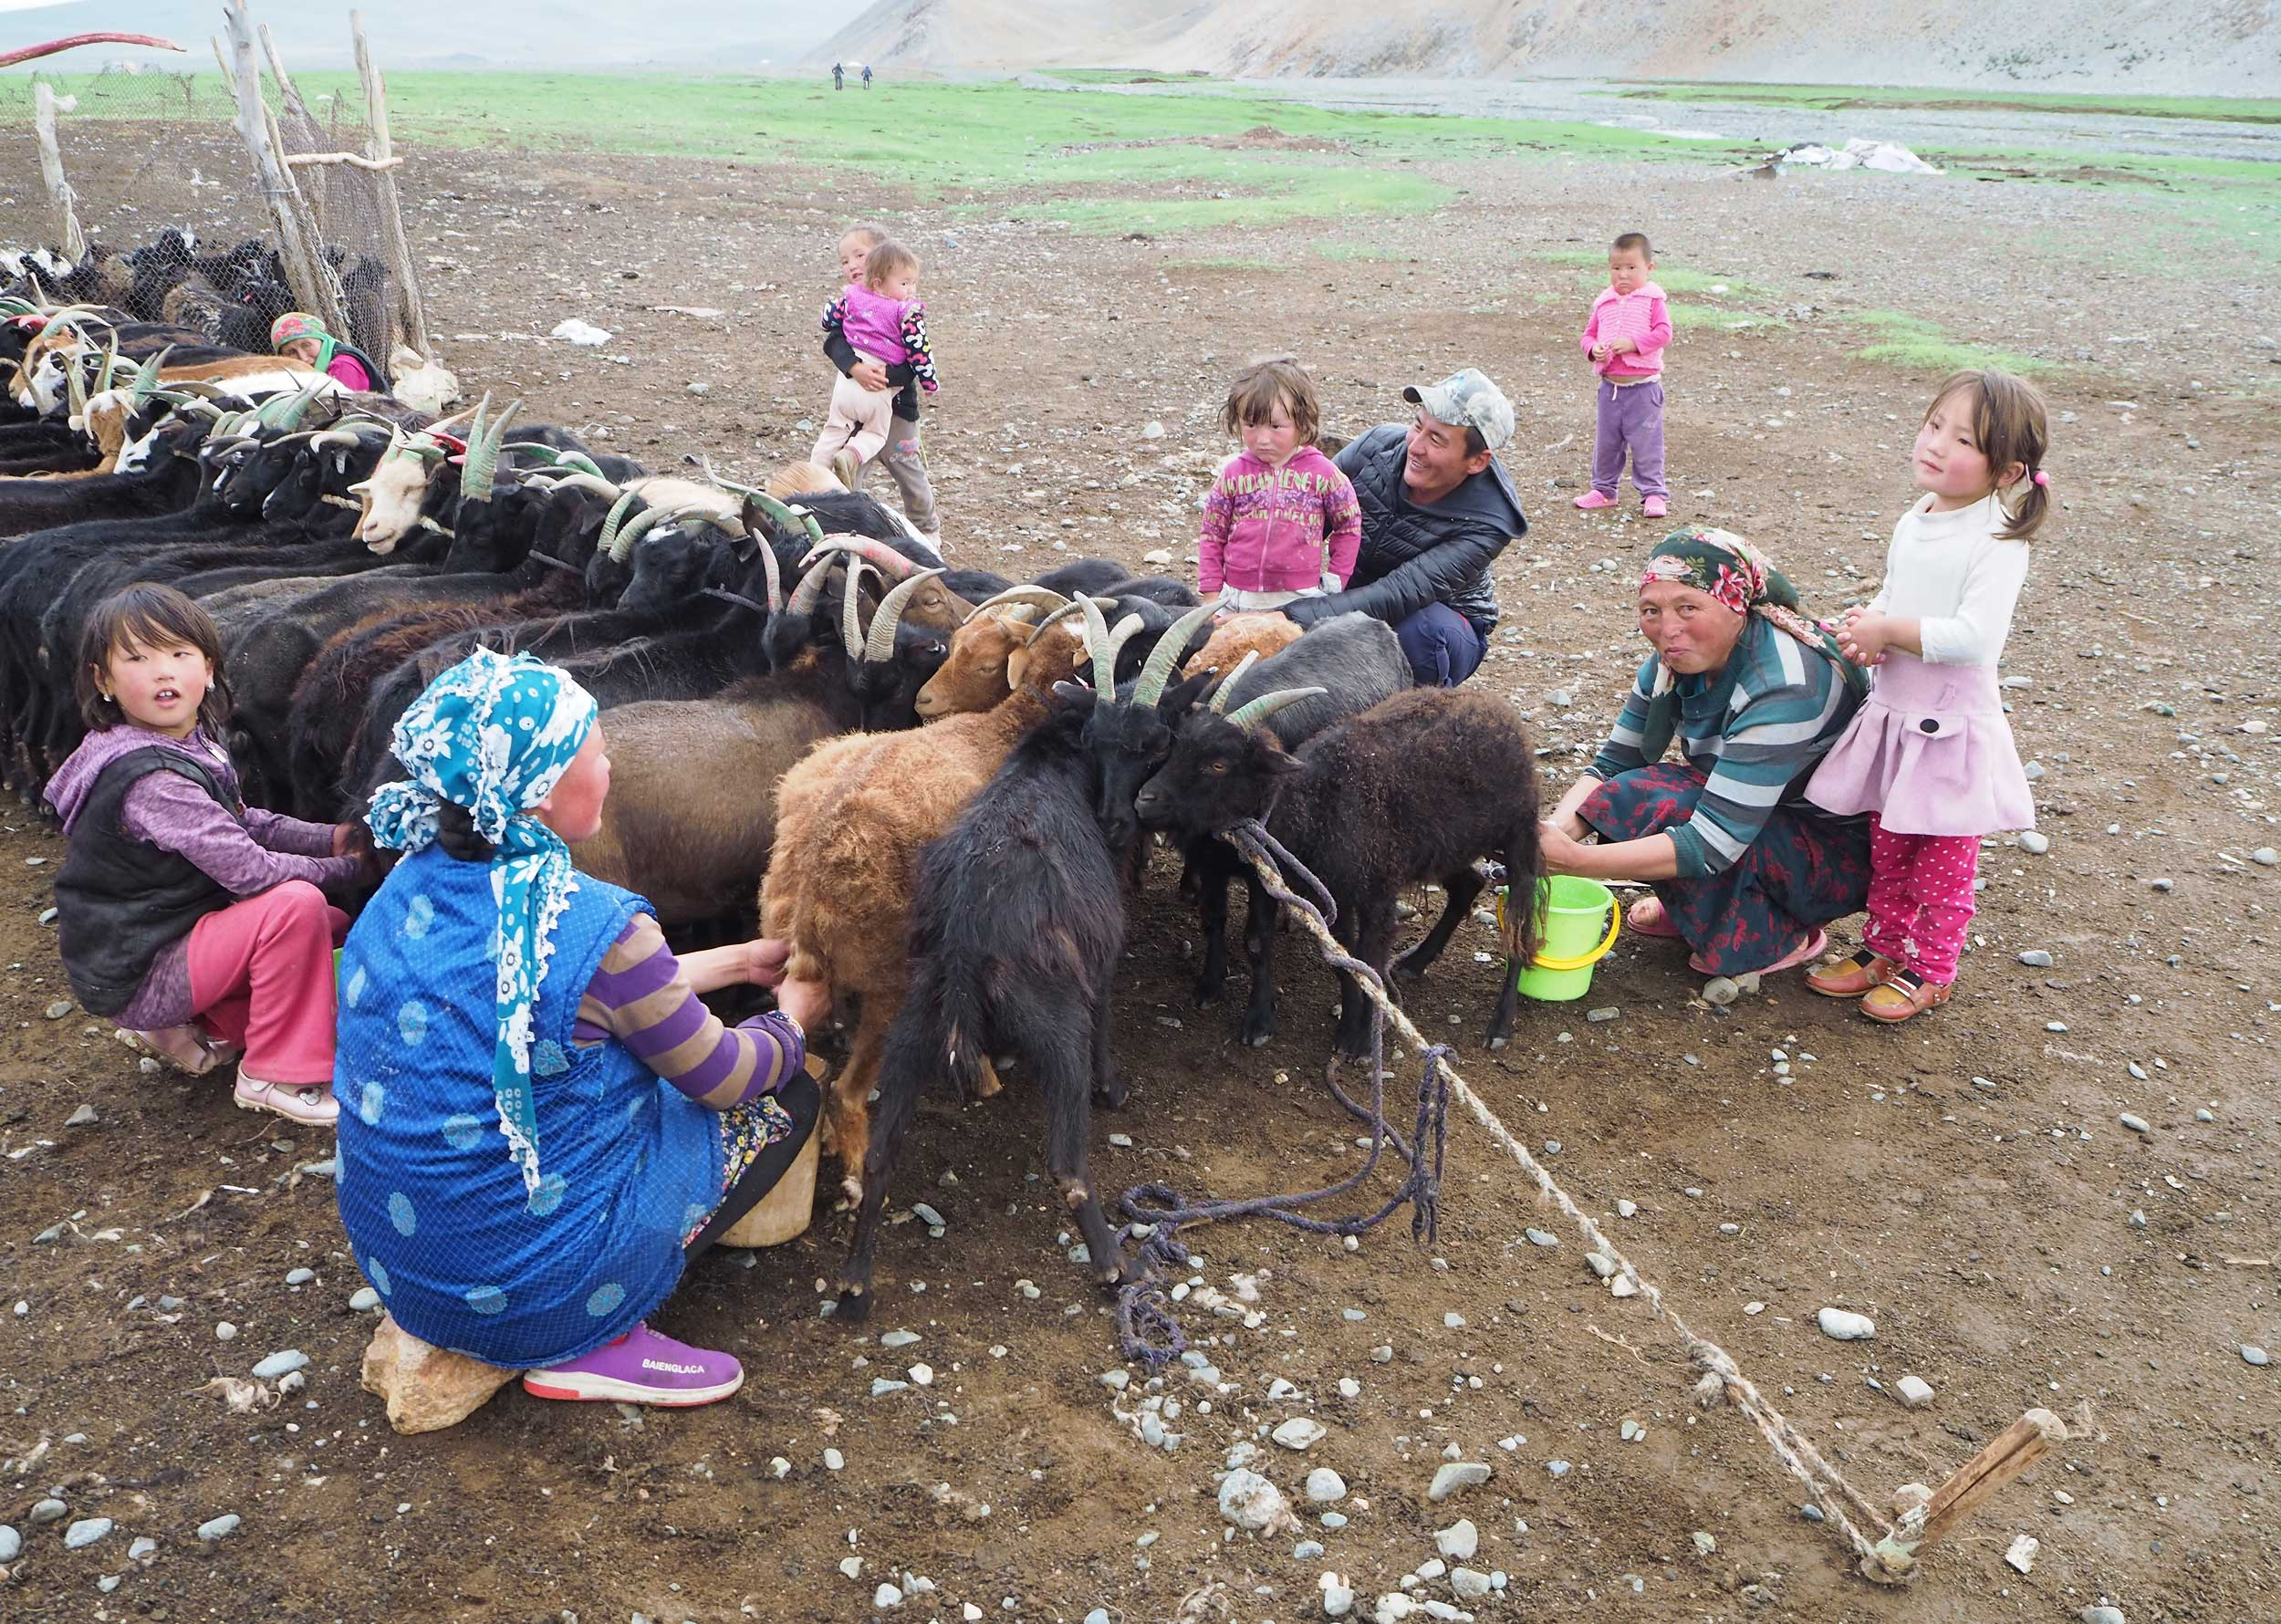 Women and children milking goats tied together in a line, Mongolia